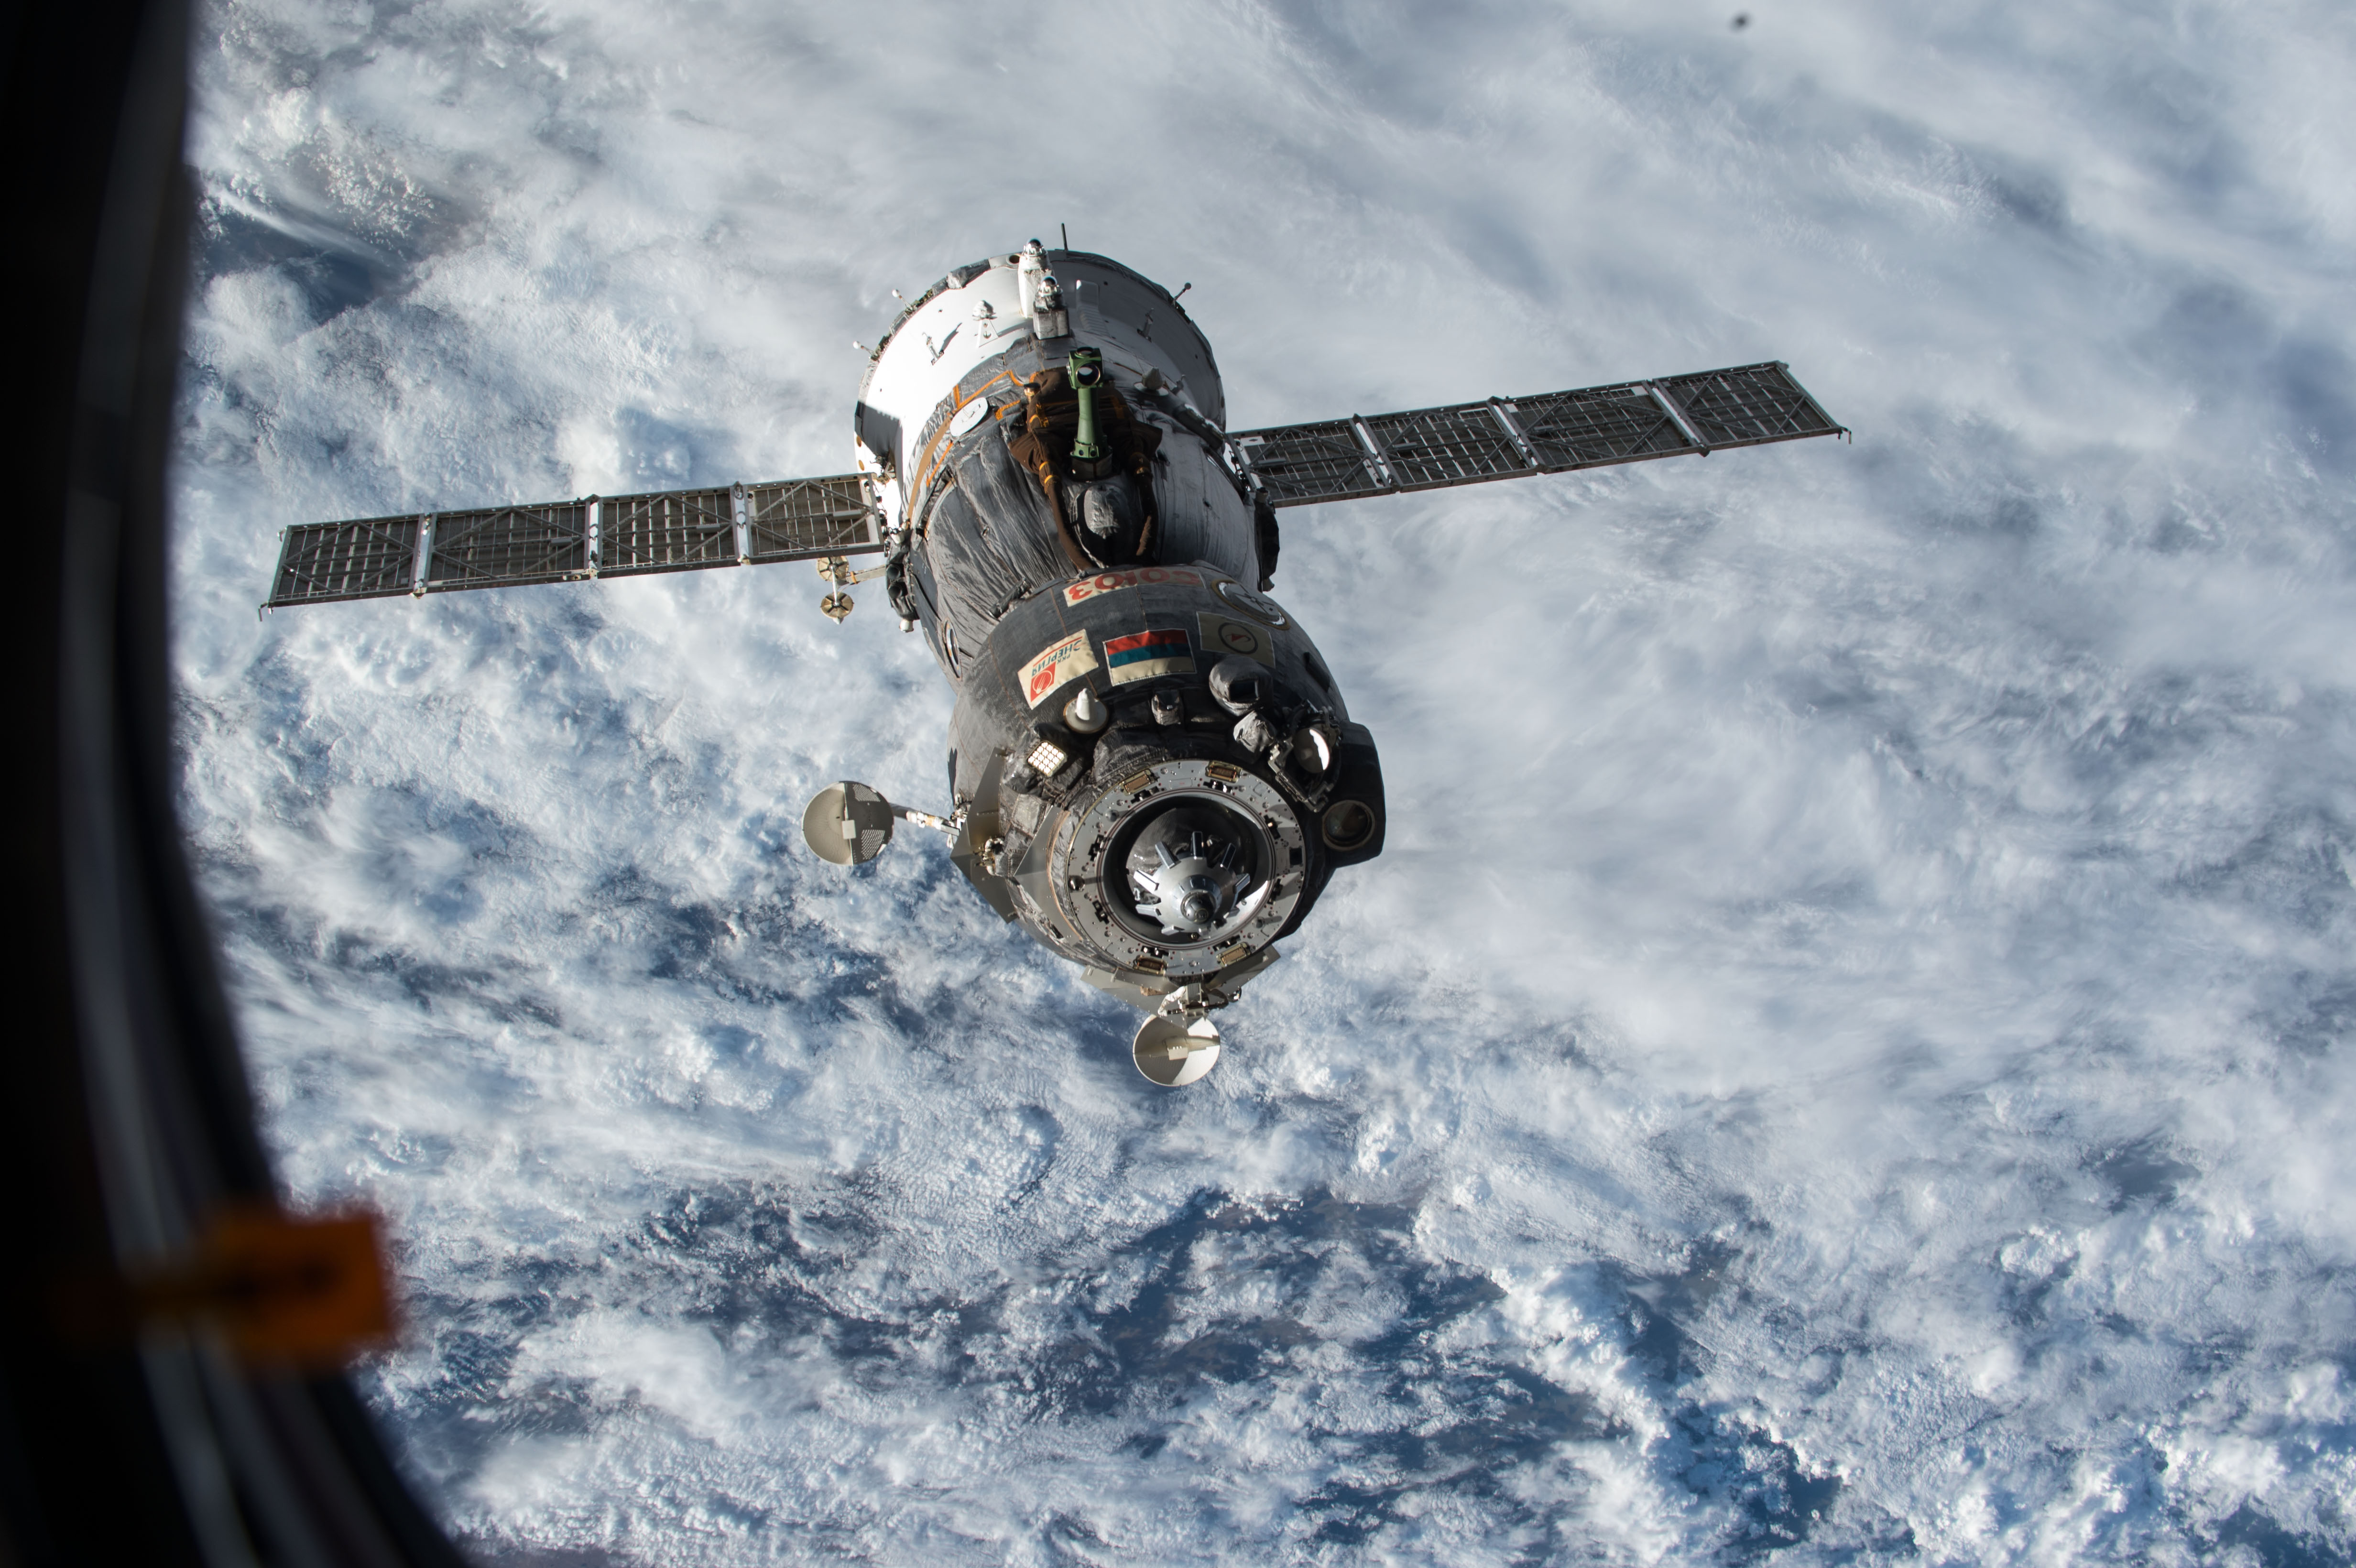 Need a lift? A Souyz spacecraft after undocking from the space station on June 11, 2015